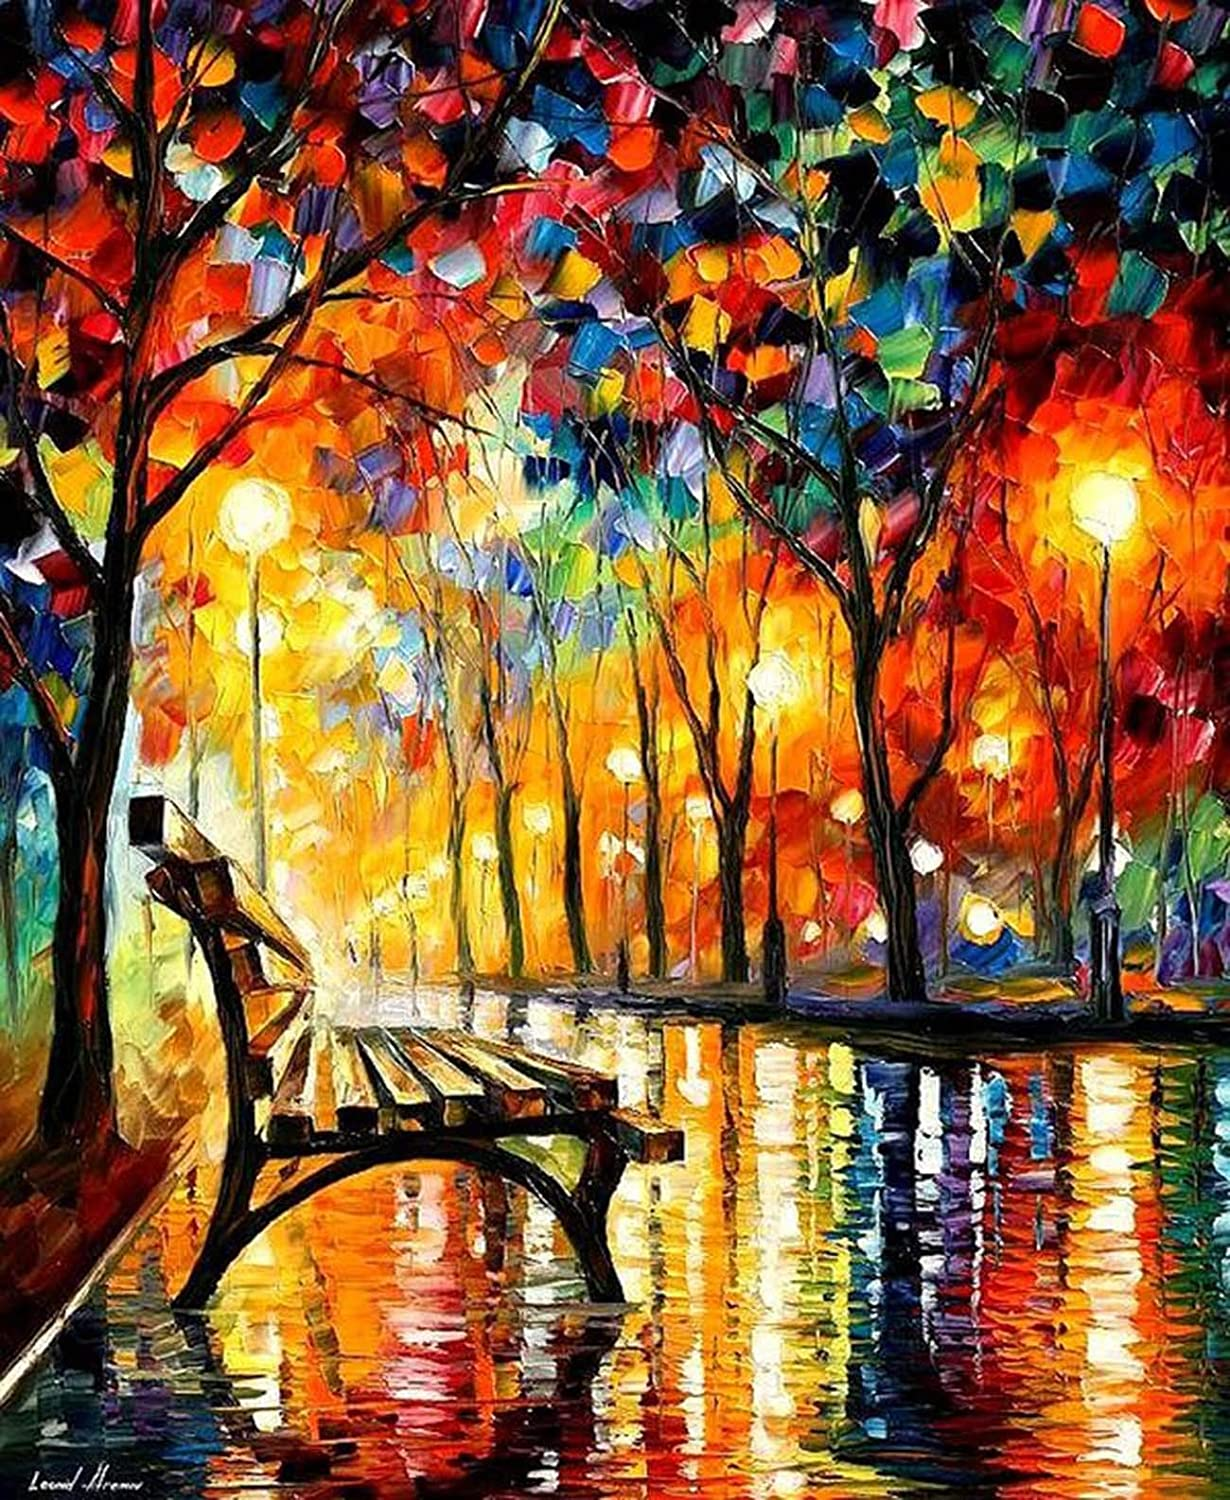 Kaliosy 5D Diamond Painting Painting of Park Bench on Rainy Night by Number Kits Paint with Diamonds Art for Adults DIY Crystal Craft Full Drill Cross Stitch Decoration 12x16inch